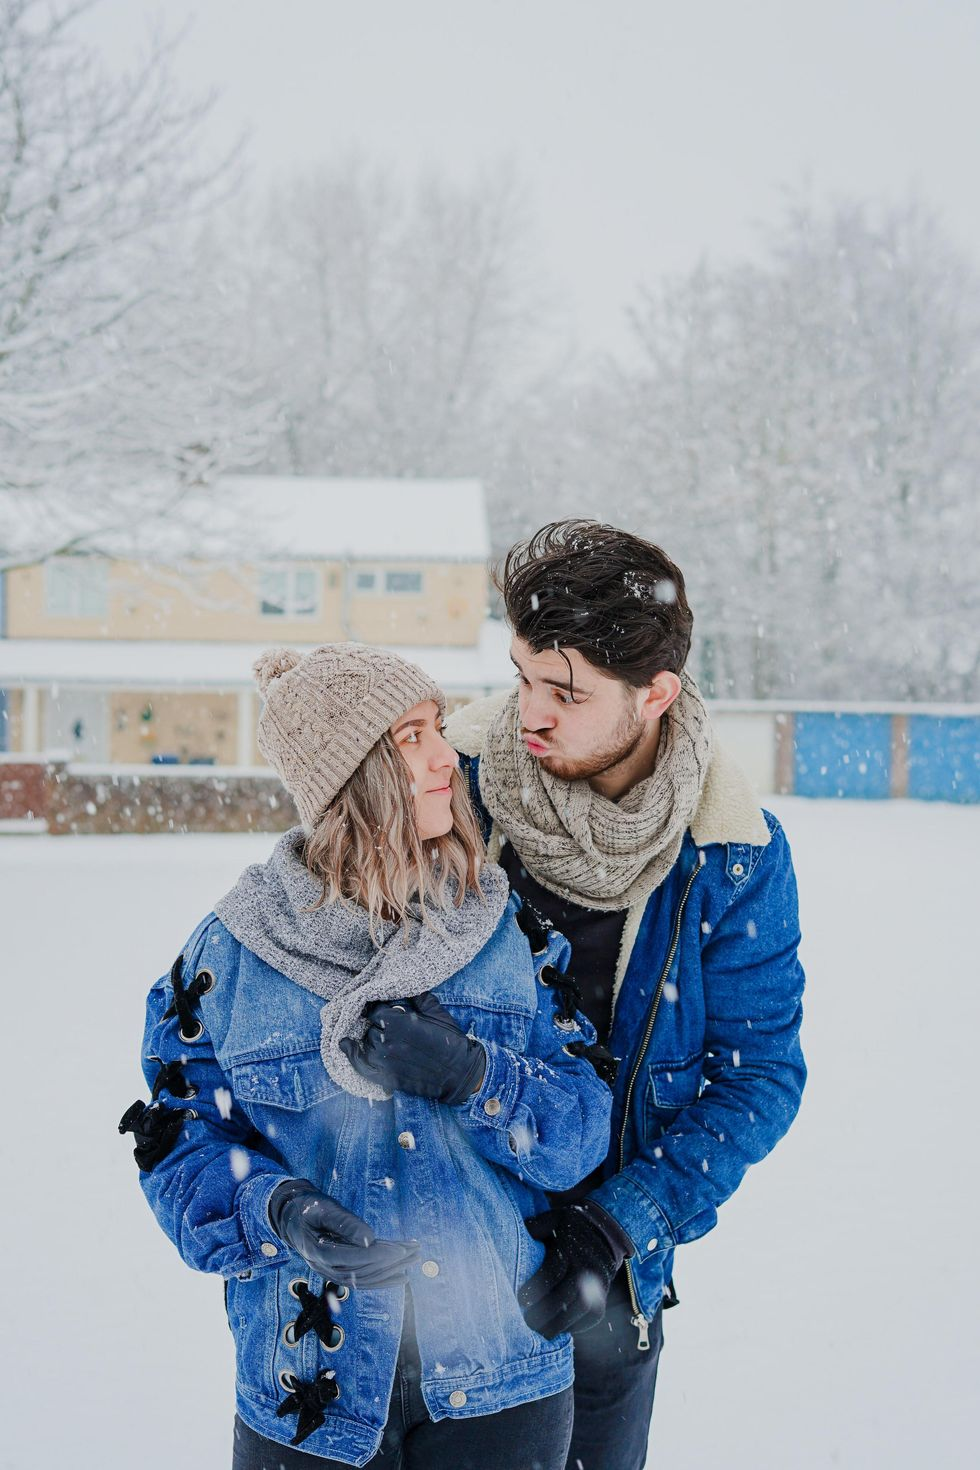 11 Winter Dates That Will Totally 'Sleigh' While Still Social Distancing